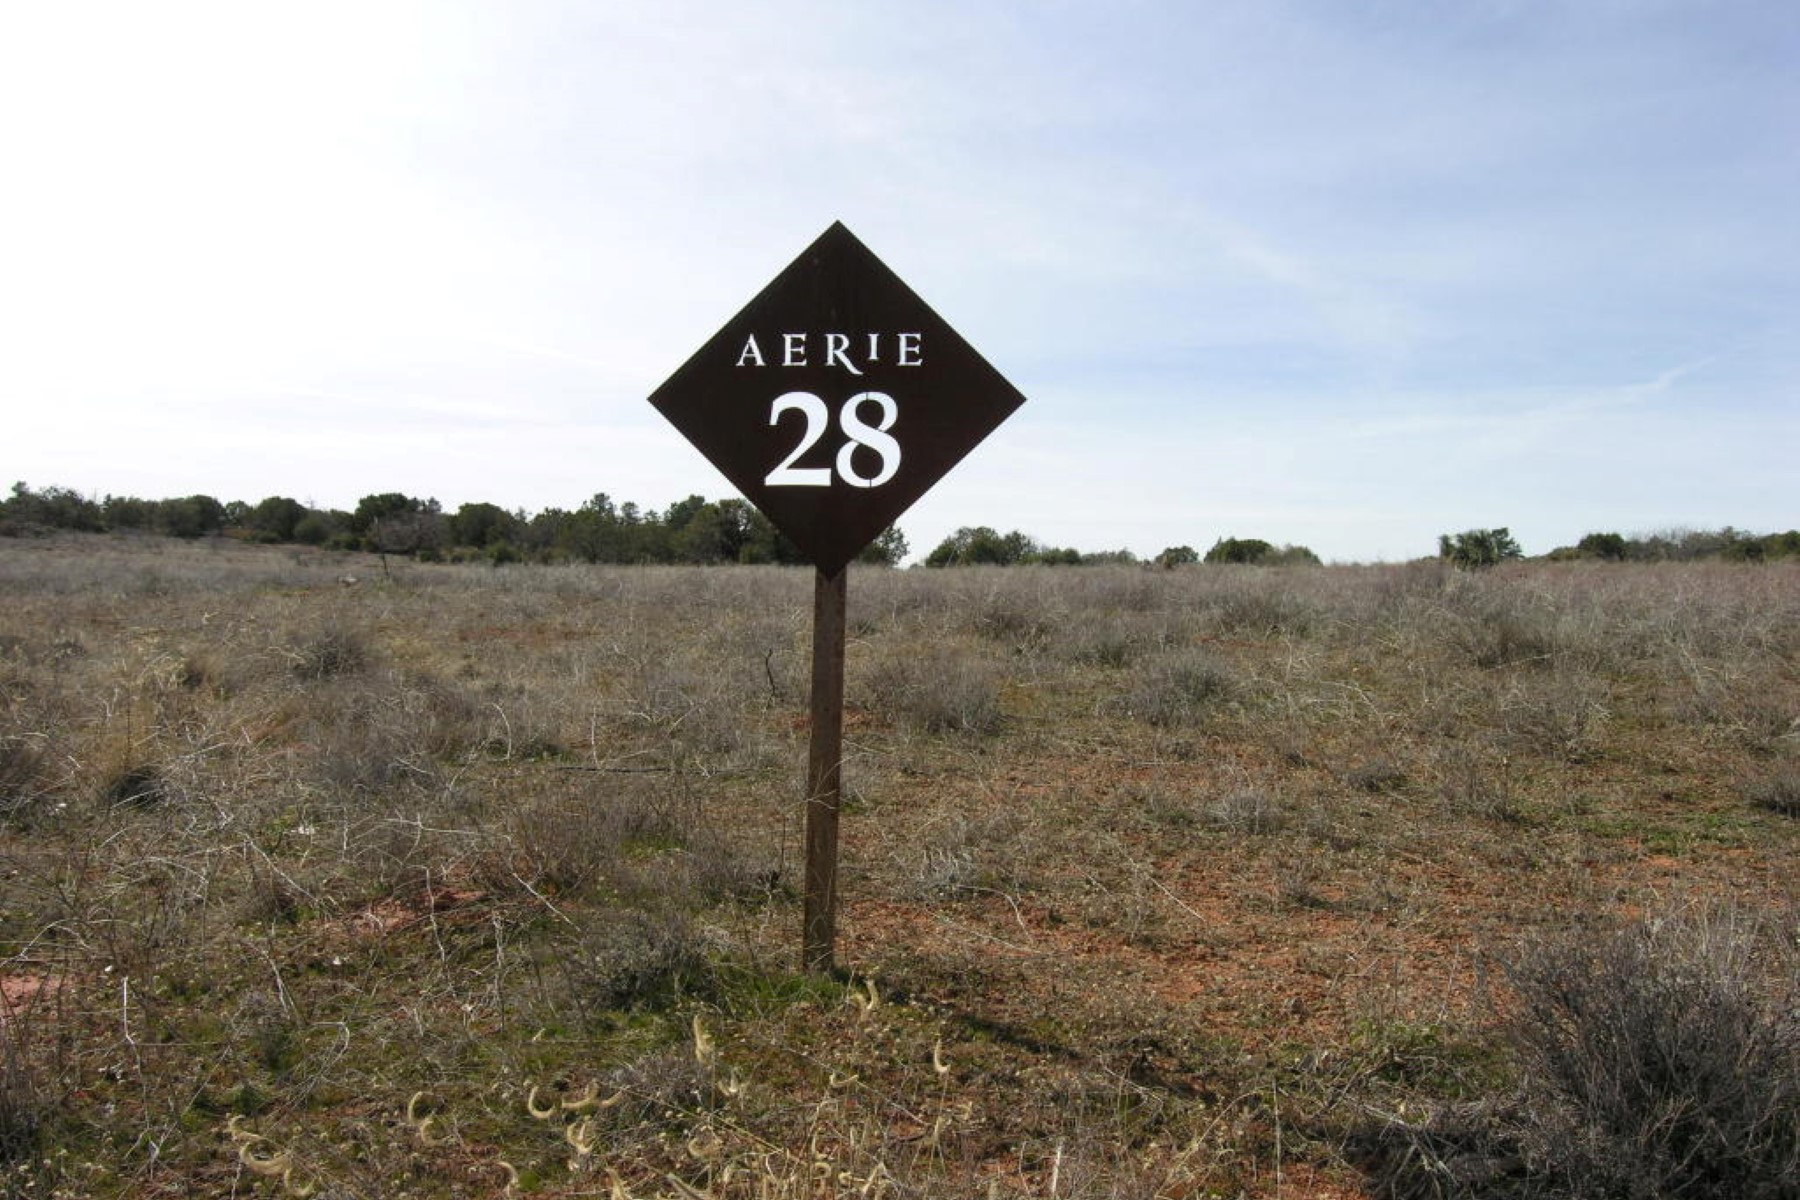 Land for Sale at Aerie Lots 29 and 28, listing includes two separate lots for optimum privacy. 360-370 Aerie RD 28/29 Sedona, Arizona 86336 United States